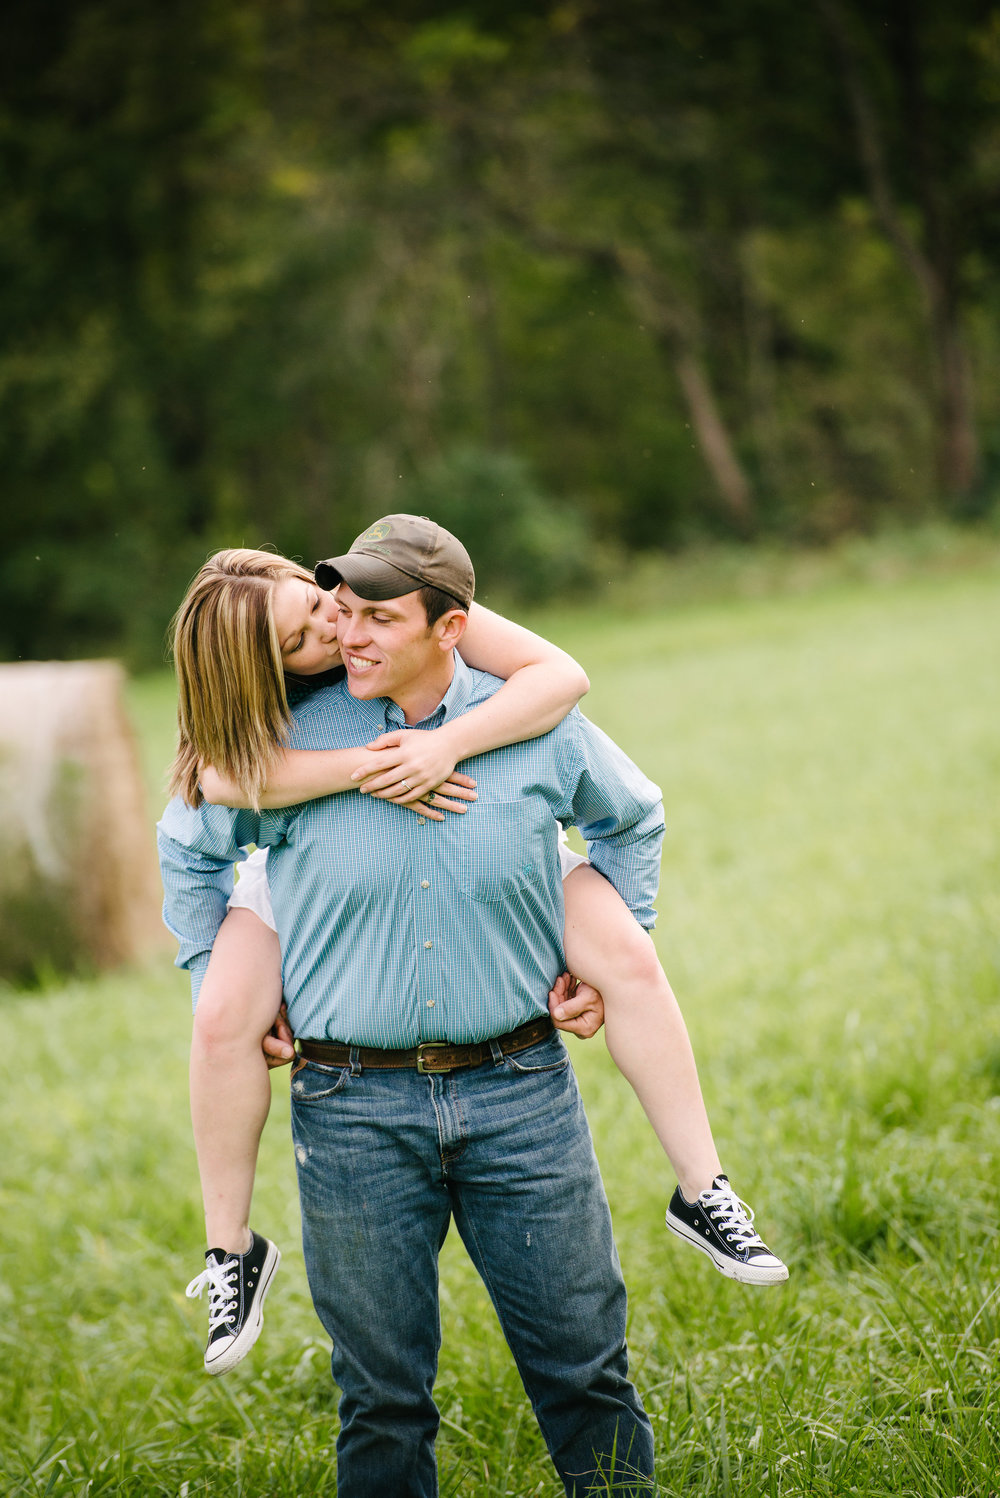 Piggy back rides from fiance during engagement photos.